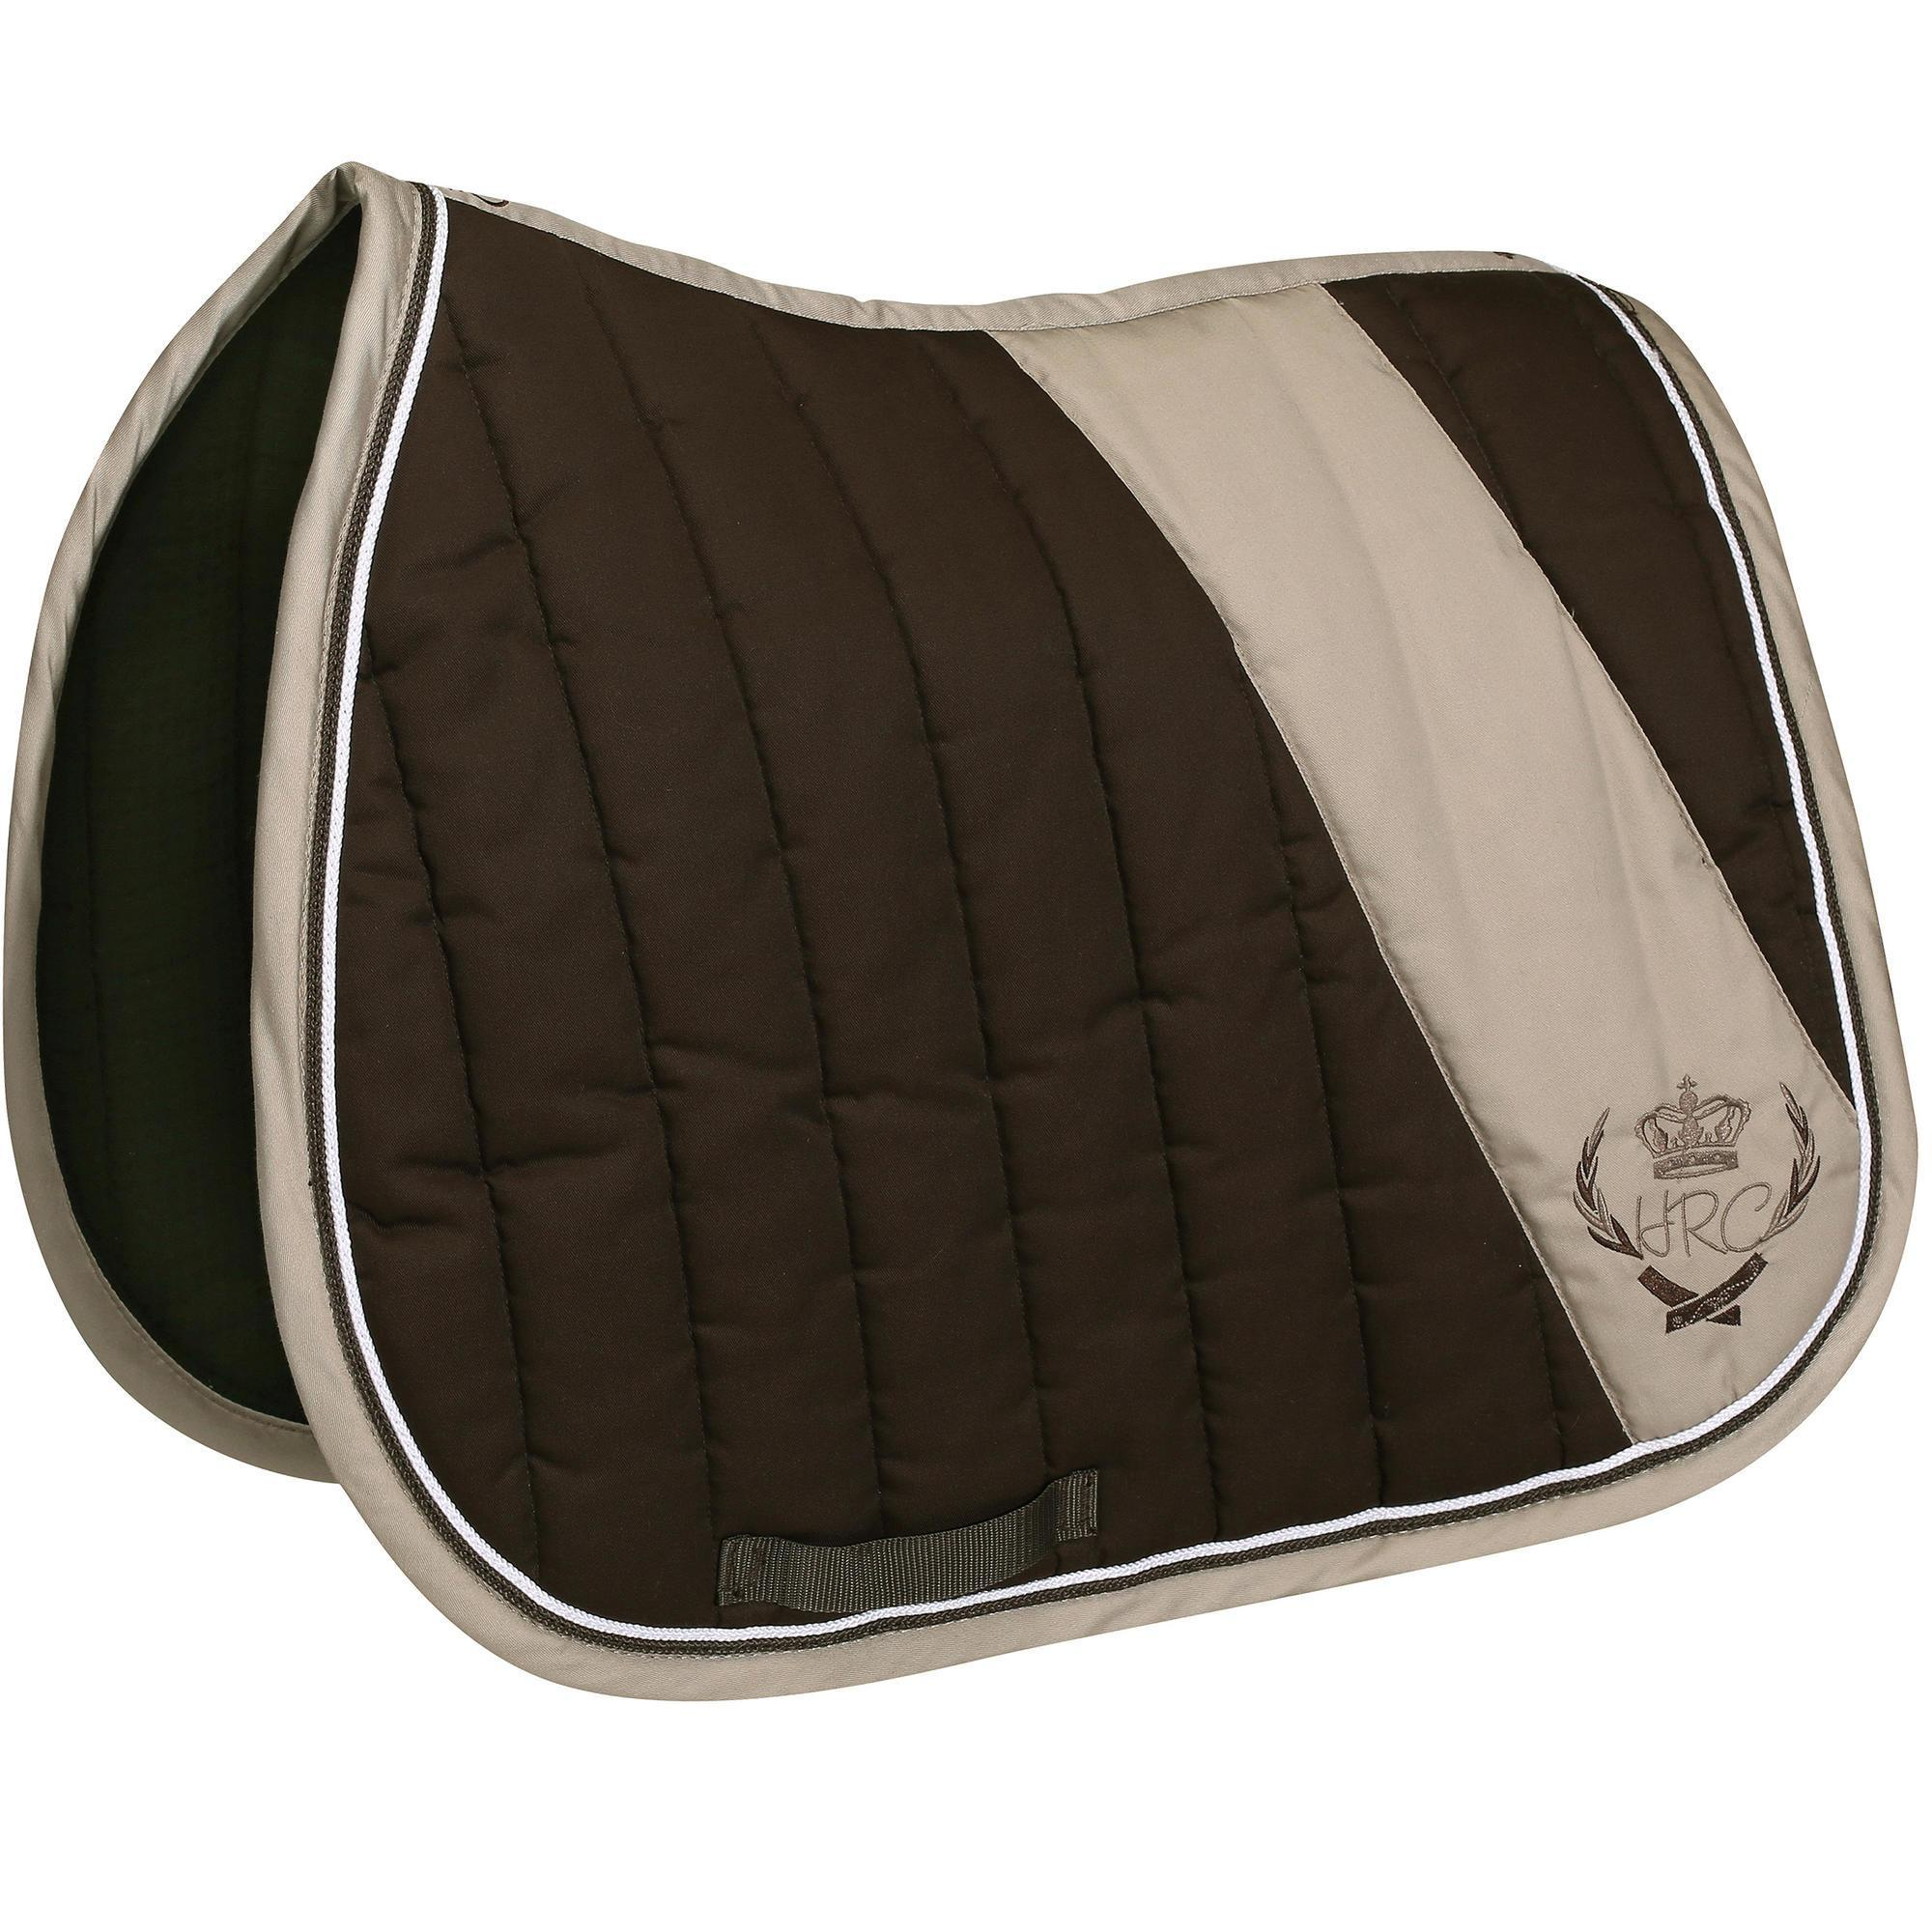 Tapis de selle quitation cheval jump marron beige fouganza Tapis beige et marron